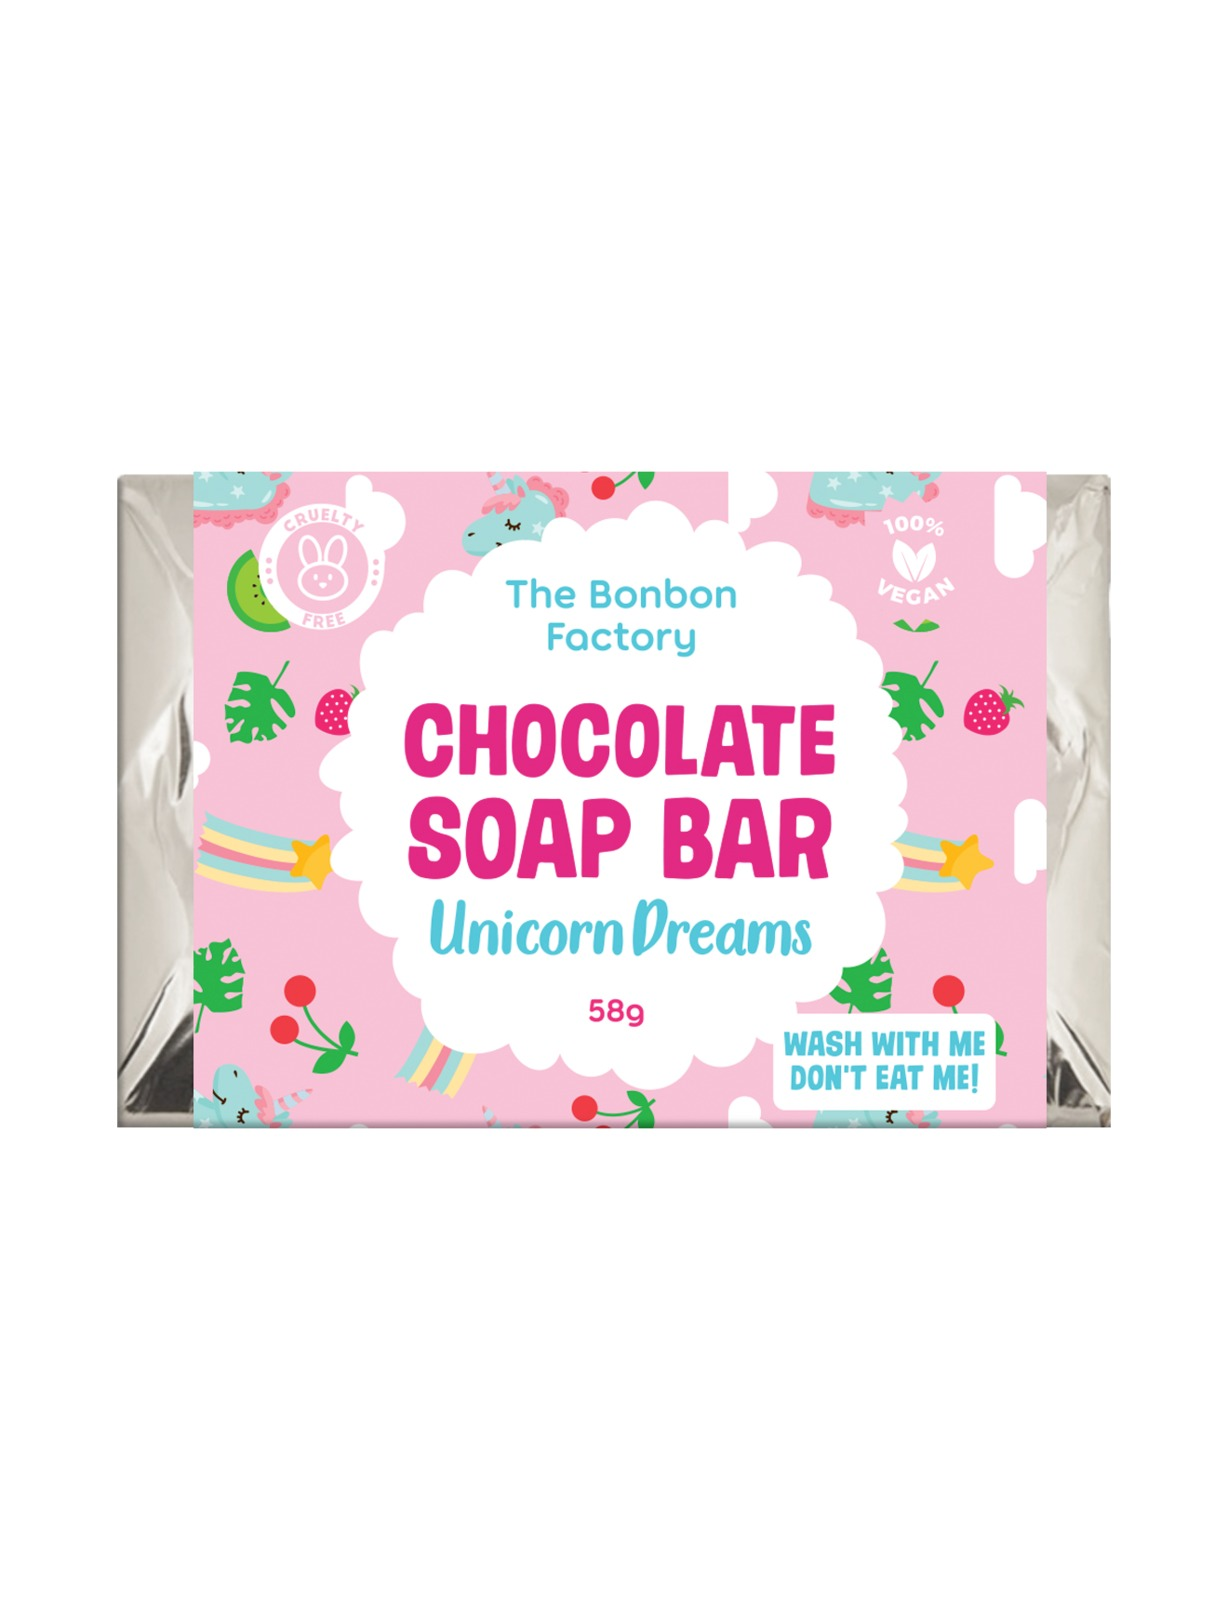 The Bonbon Factory Choc Soap Bar Slab - Unicorn Dreams image